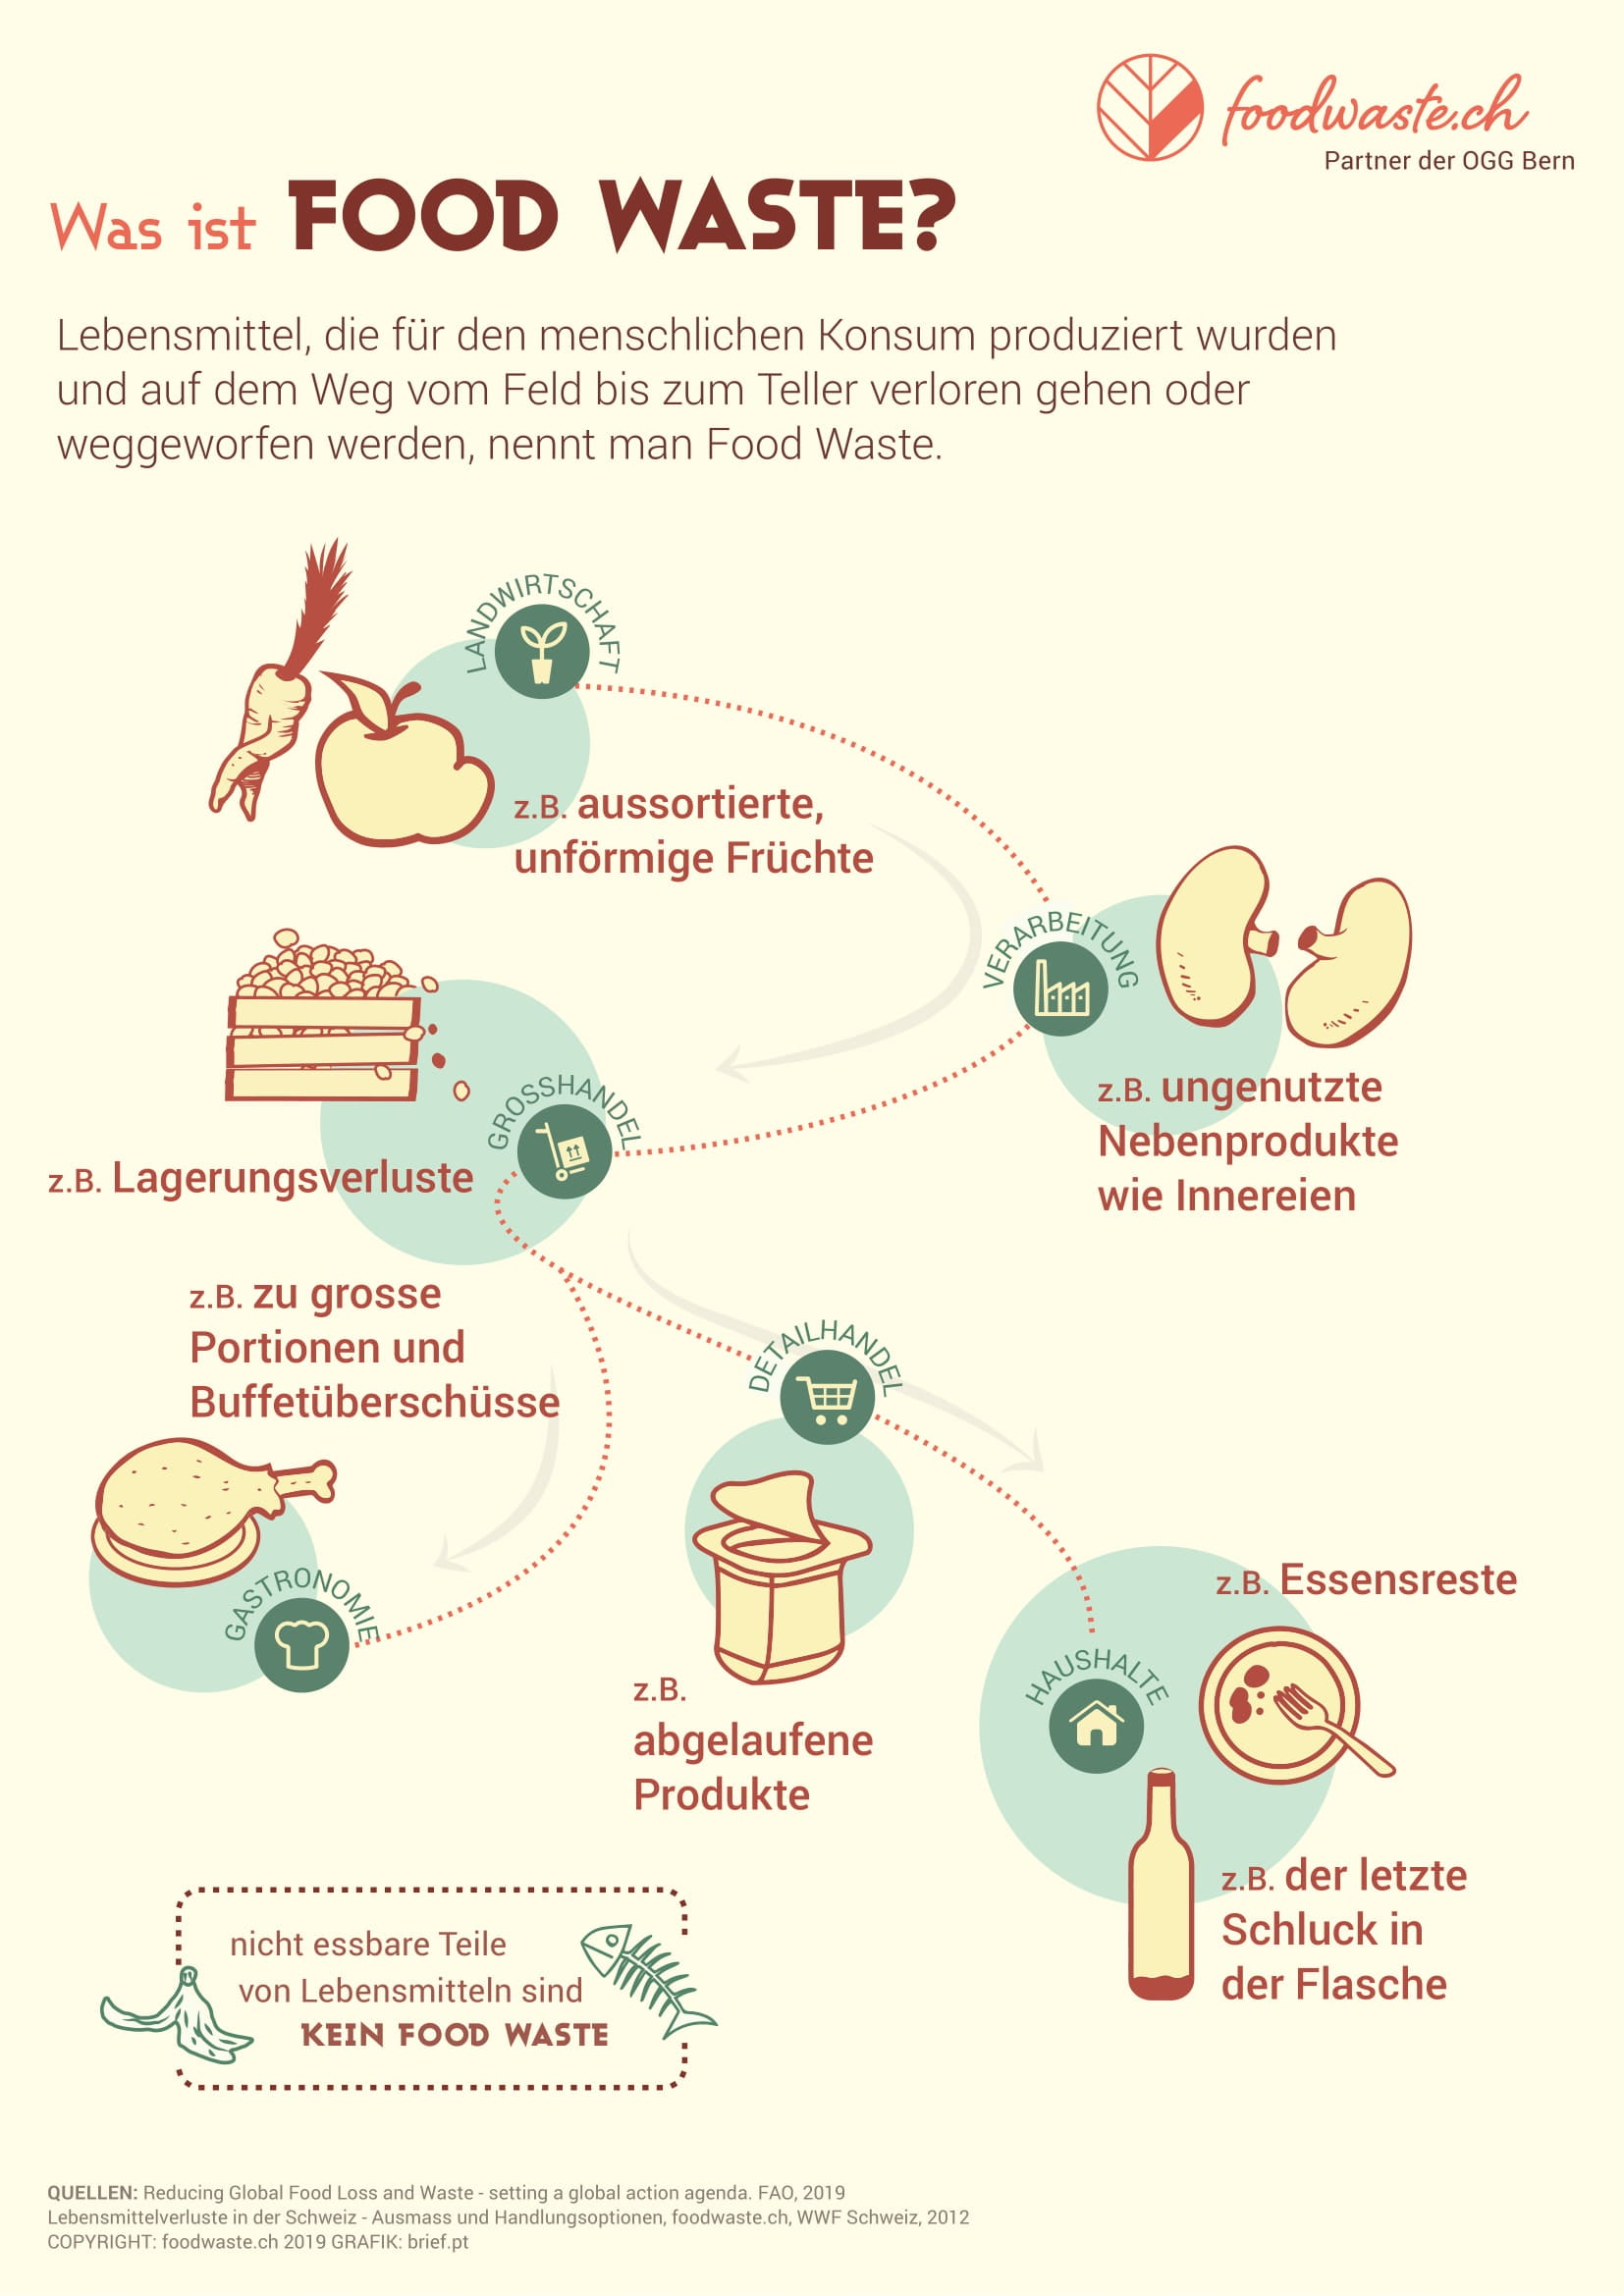 Food Waste - What is food waste - info graphic by foodwaste.ch